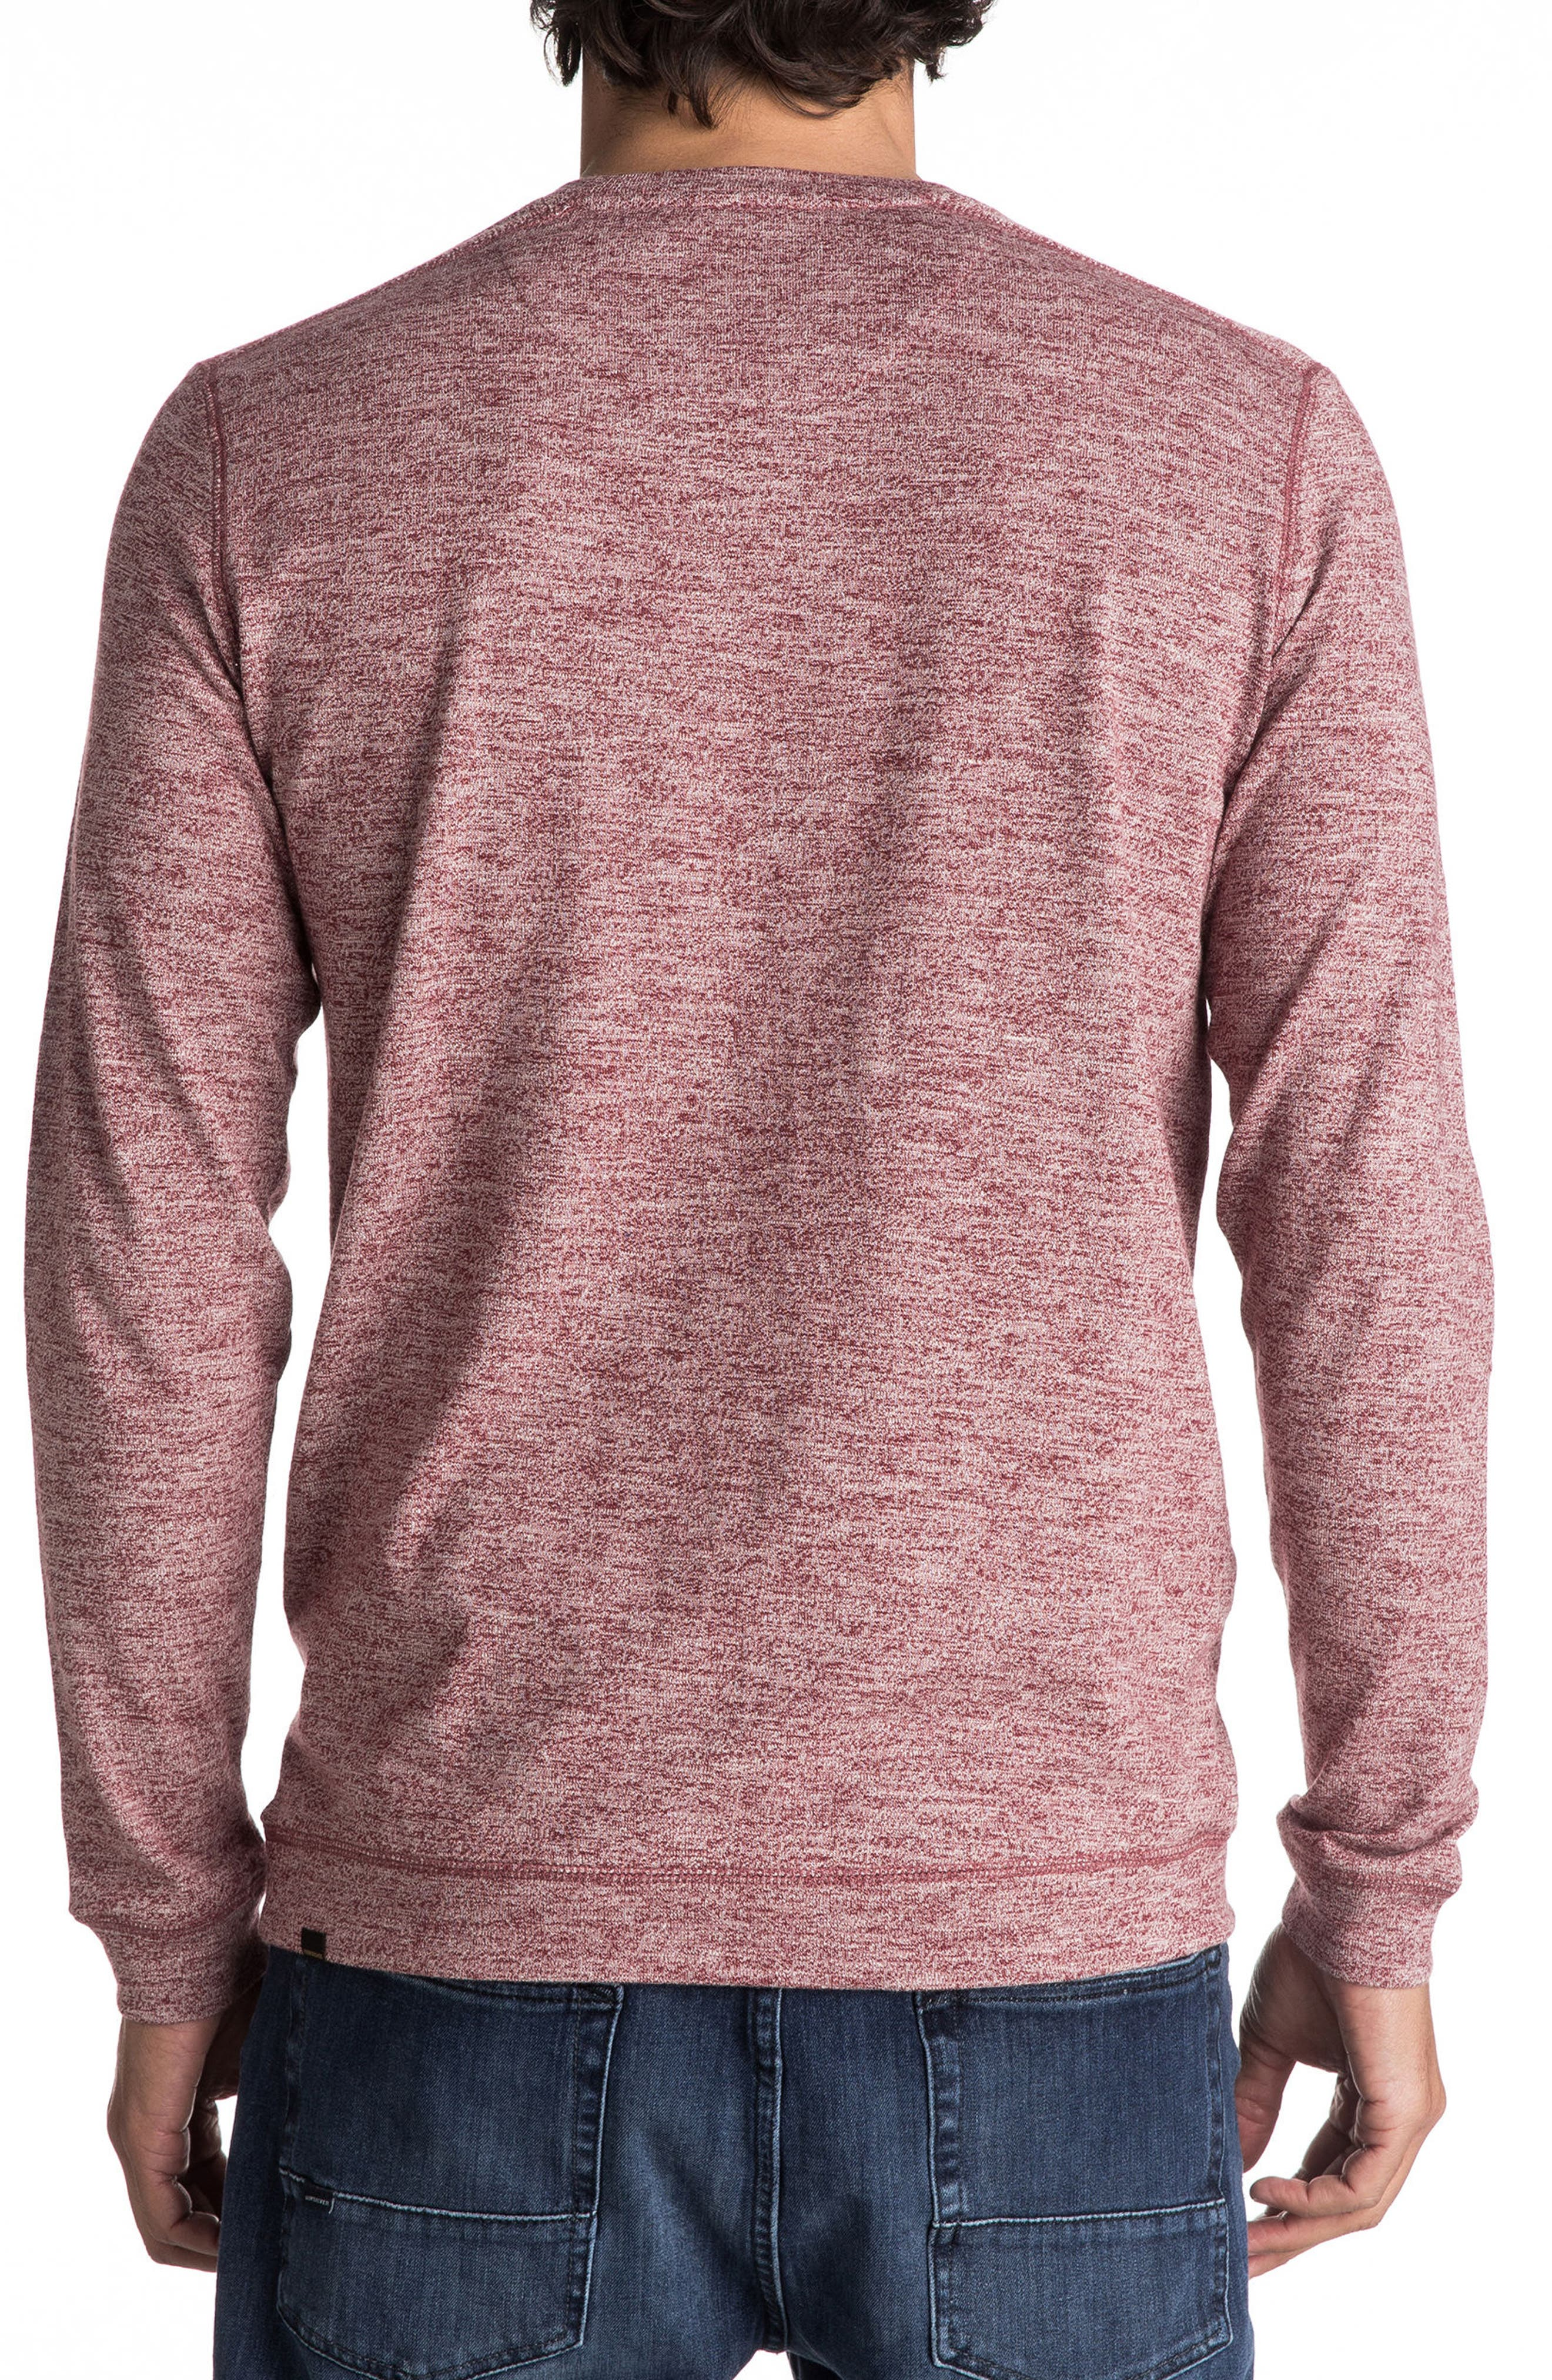 Lindow Marled Sweater,                             Alternate thumbnail 6, color,